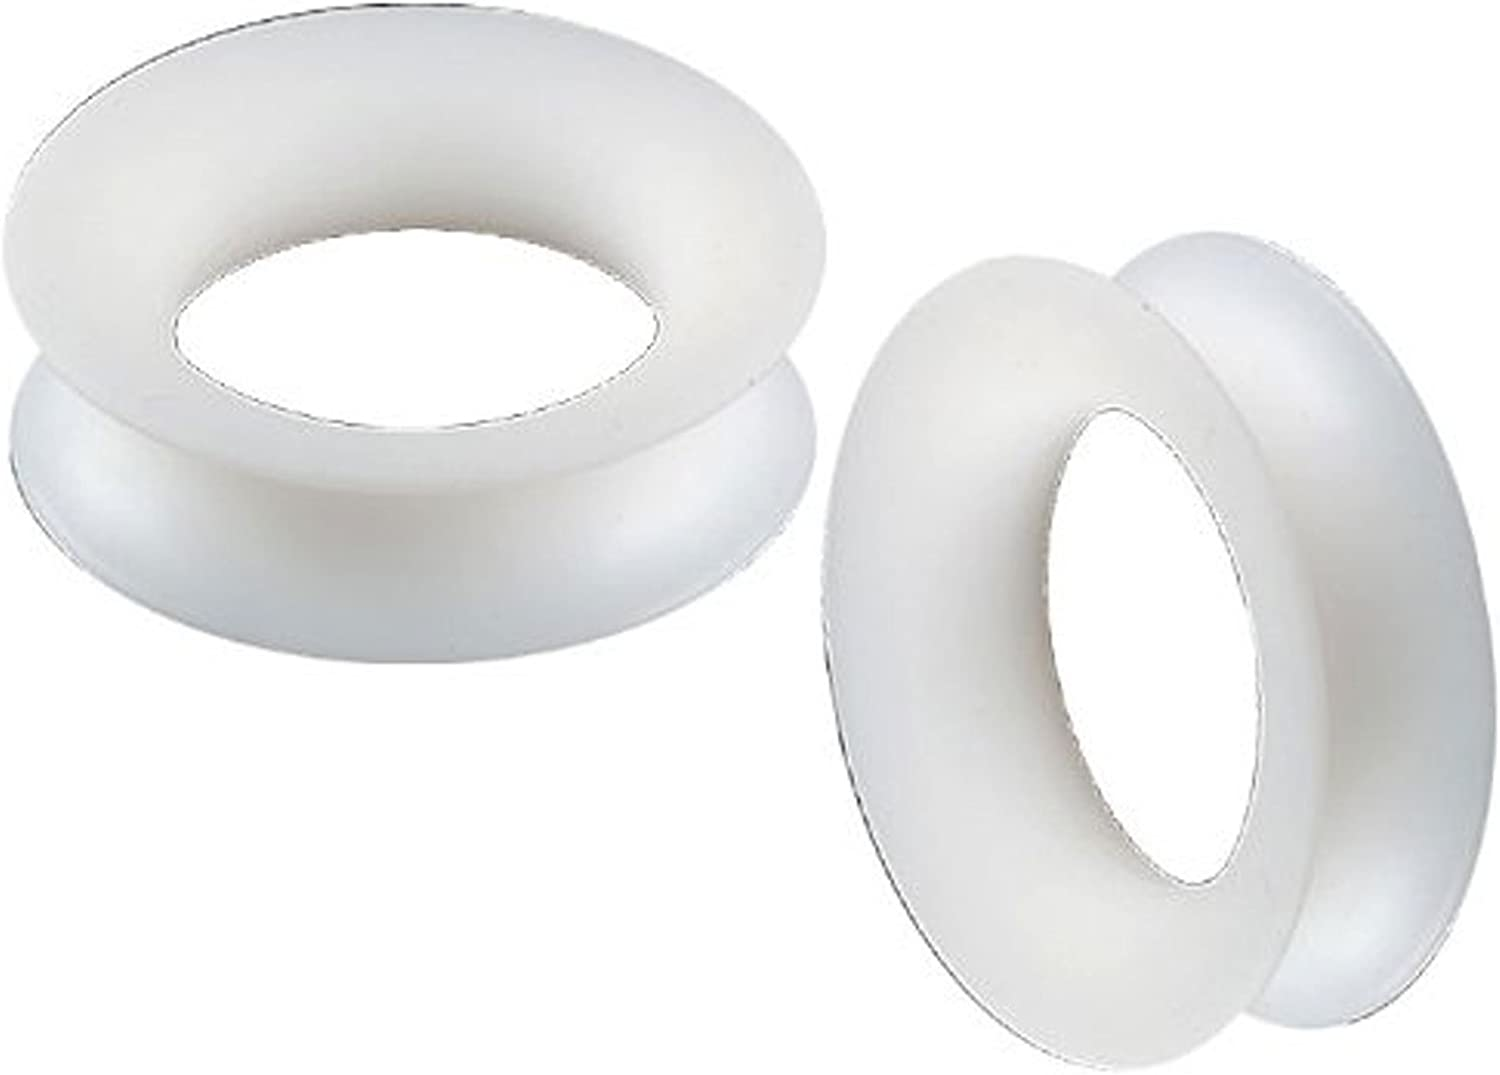 36mm White Silicone Double Flare Flesh Tunnels Ear Large Gauge Plugs ABYK Ear Stretching Stretchers Piercing SI04 2Pcs